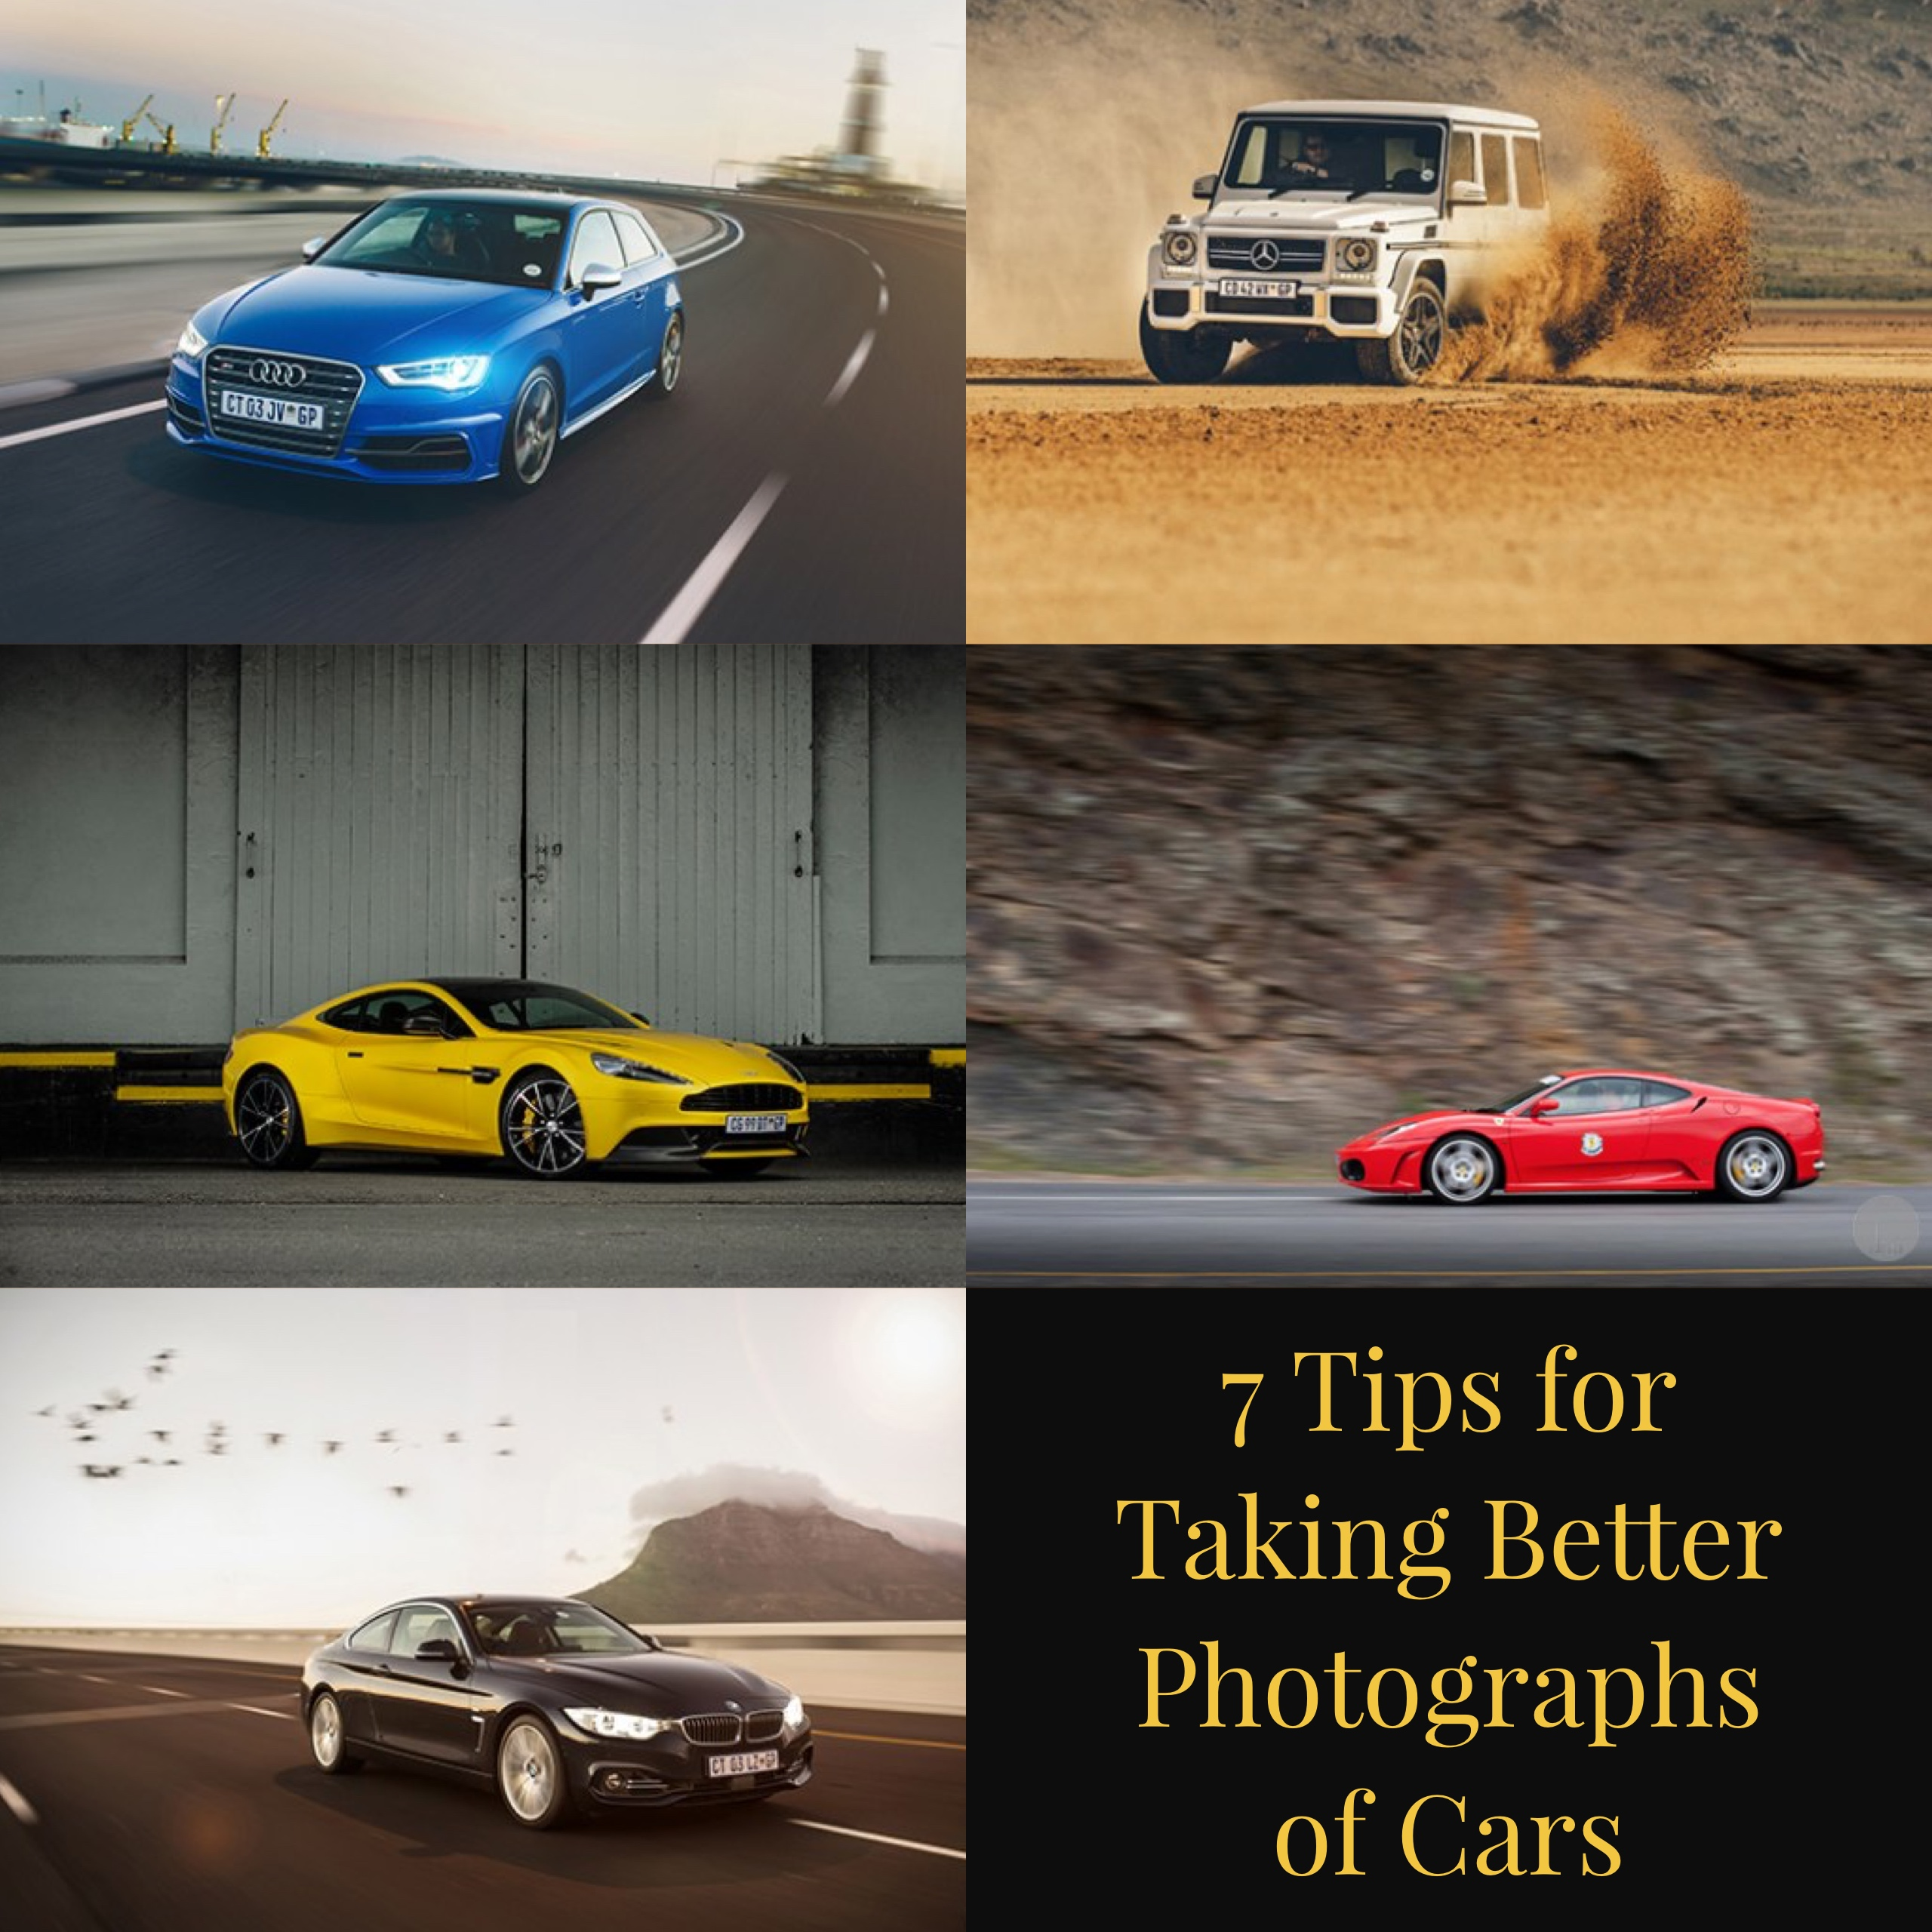 Taking photos of cars is such an